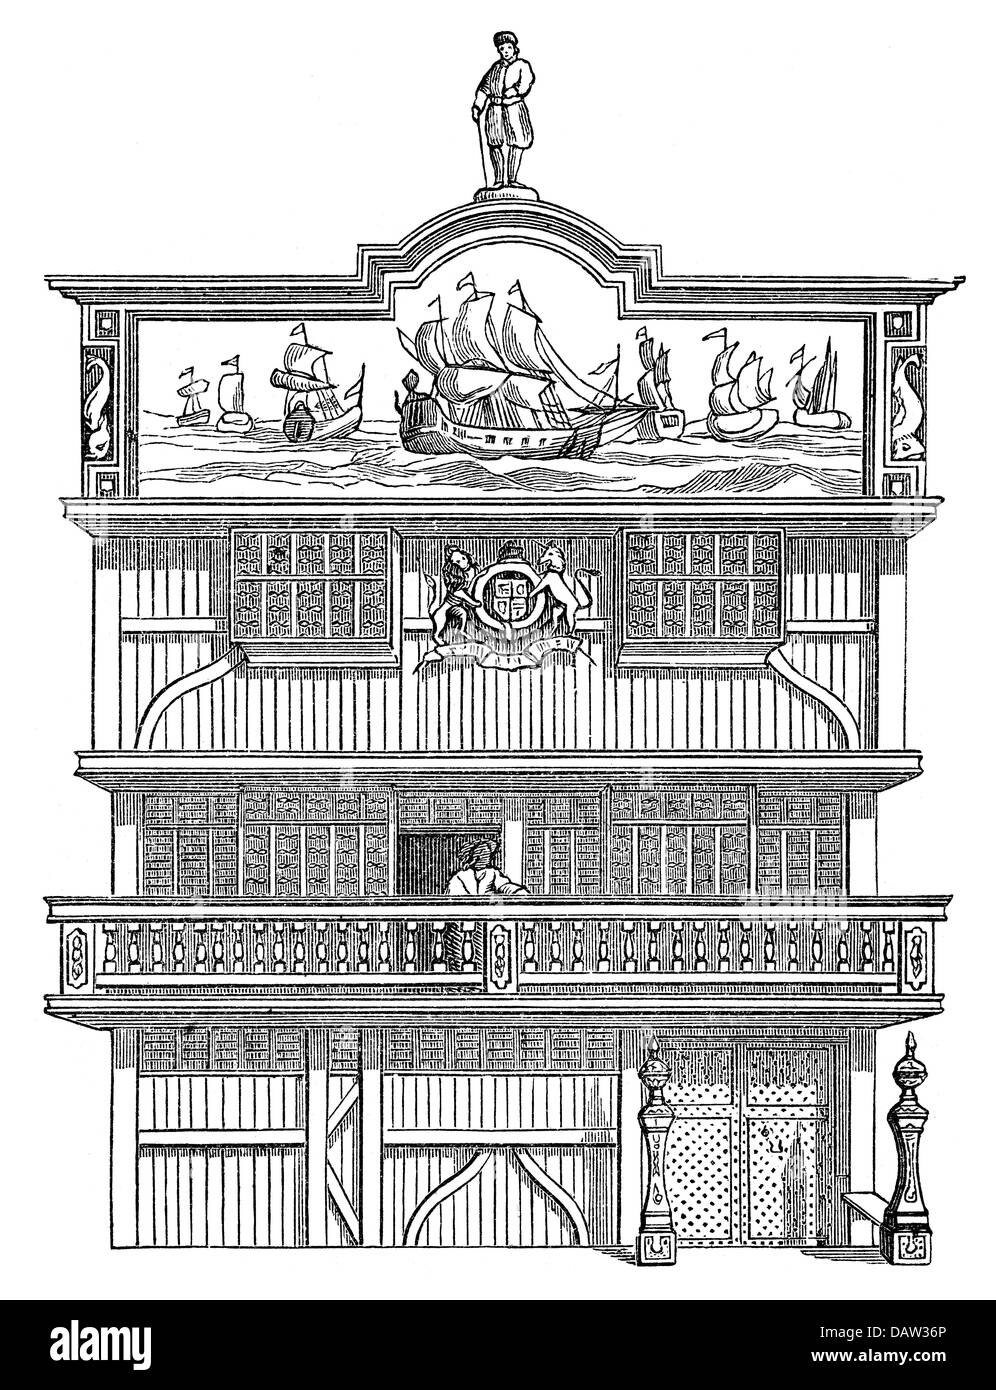 trade, trading company, English East India Company, headquarters in London, exterior view, after engraving, 17th - Stock Image